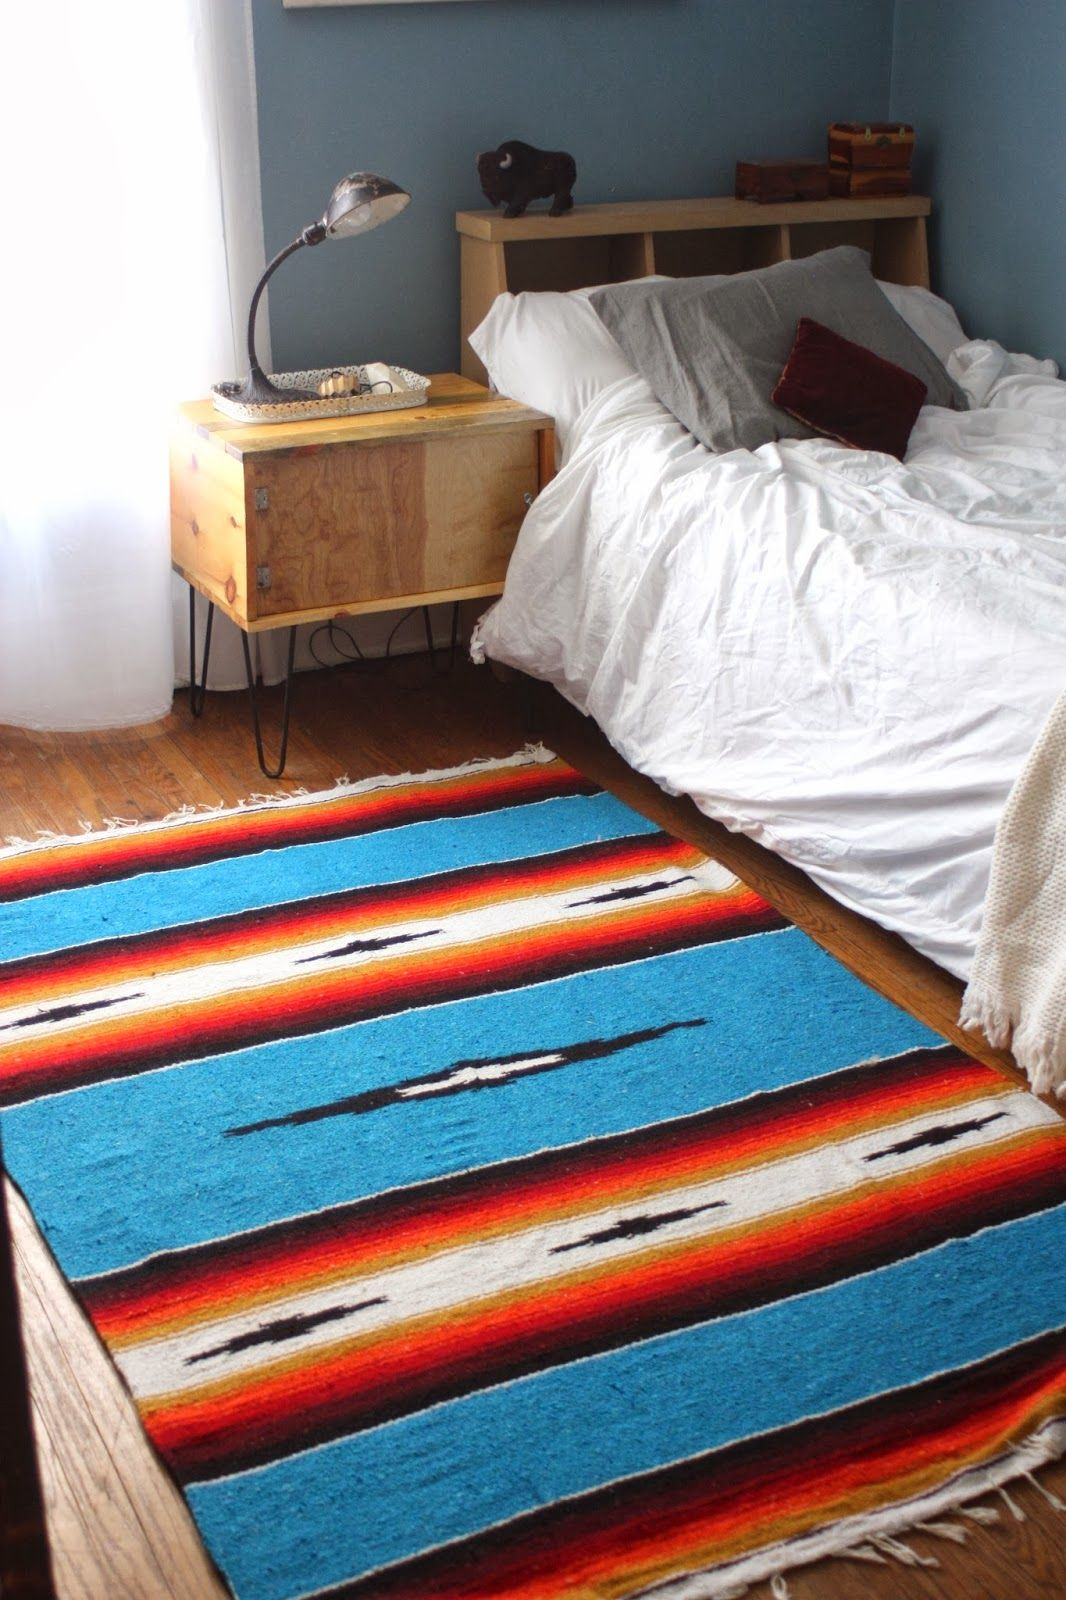 Alfombras Dormitorio Baratas Cheap South Western Blanket With Rug Padding Underneath